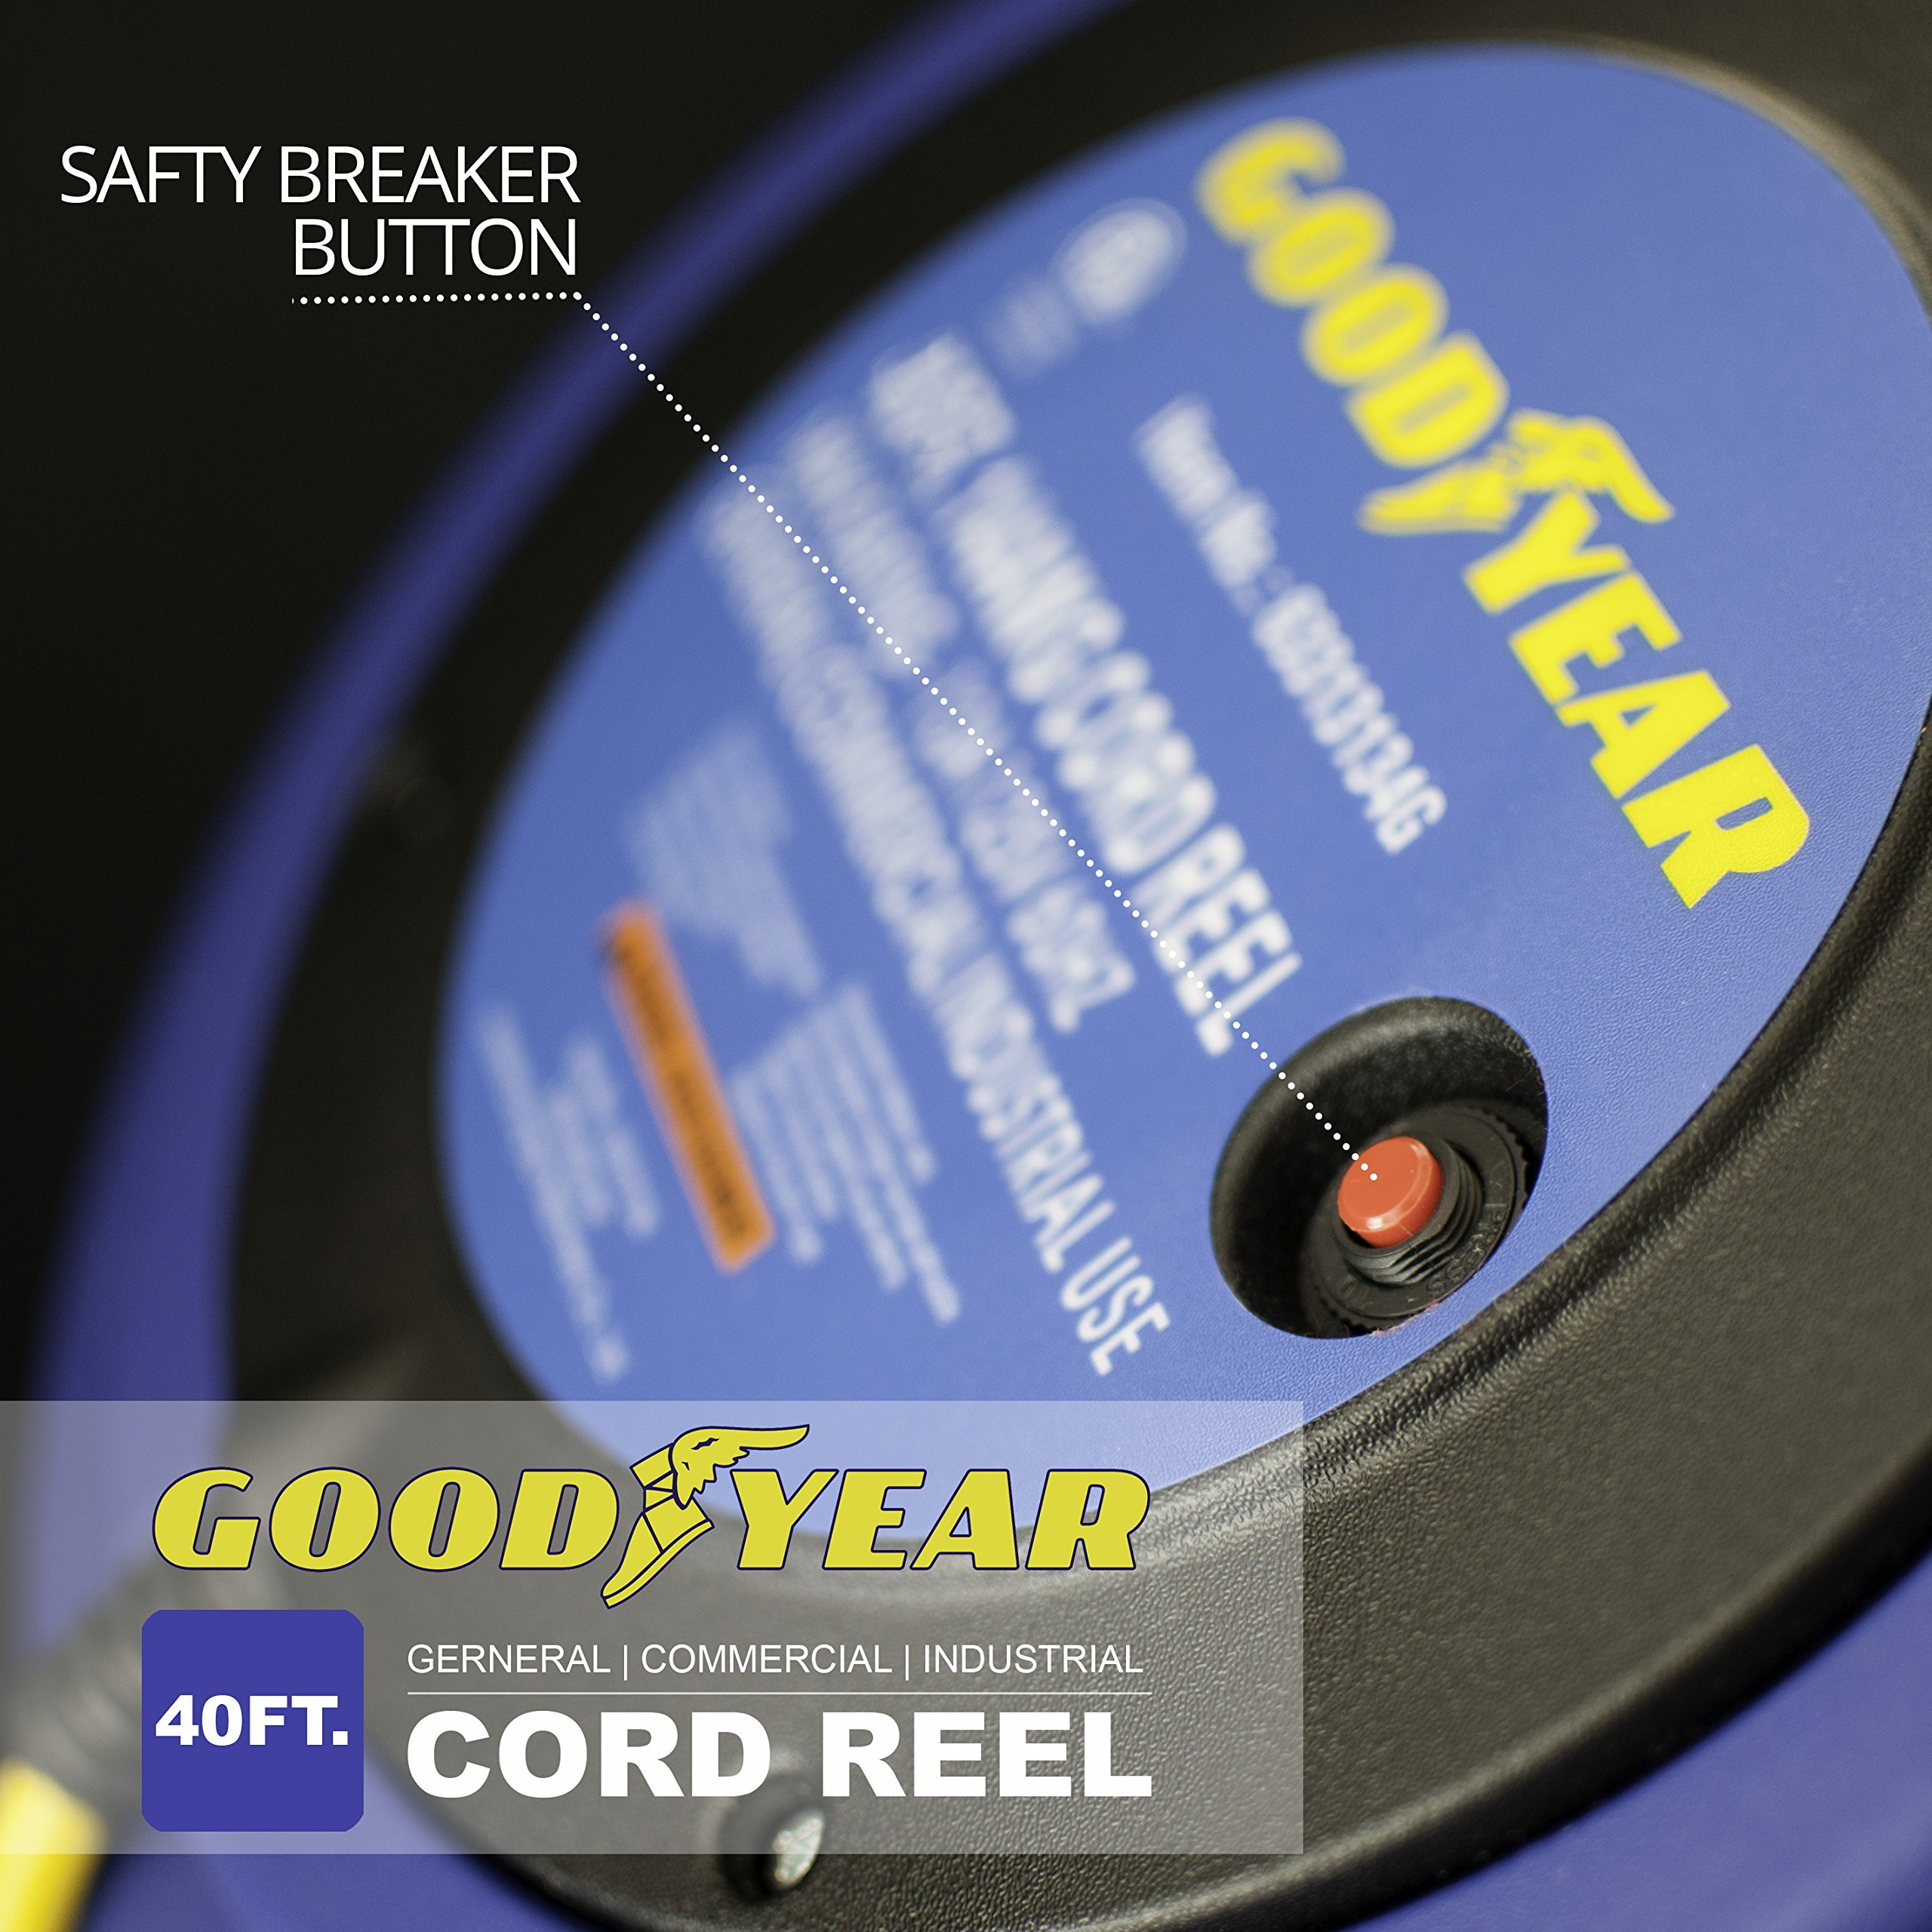 Goodyear Extension Cord Reel Heavy Duty, 40 ft., 12AWG/3C SJTOW, Triple Tap with LED Lighted Connector by Goodyear (Image #3)